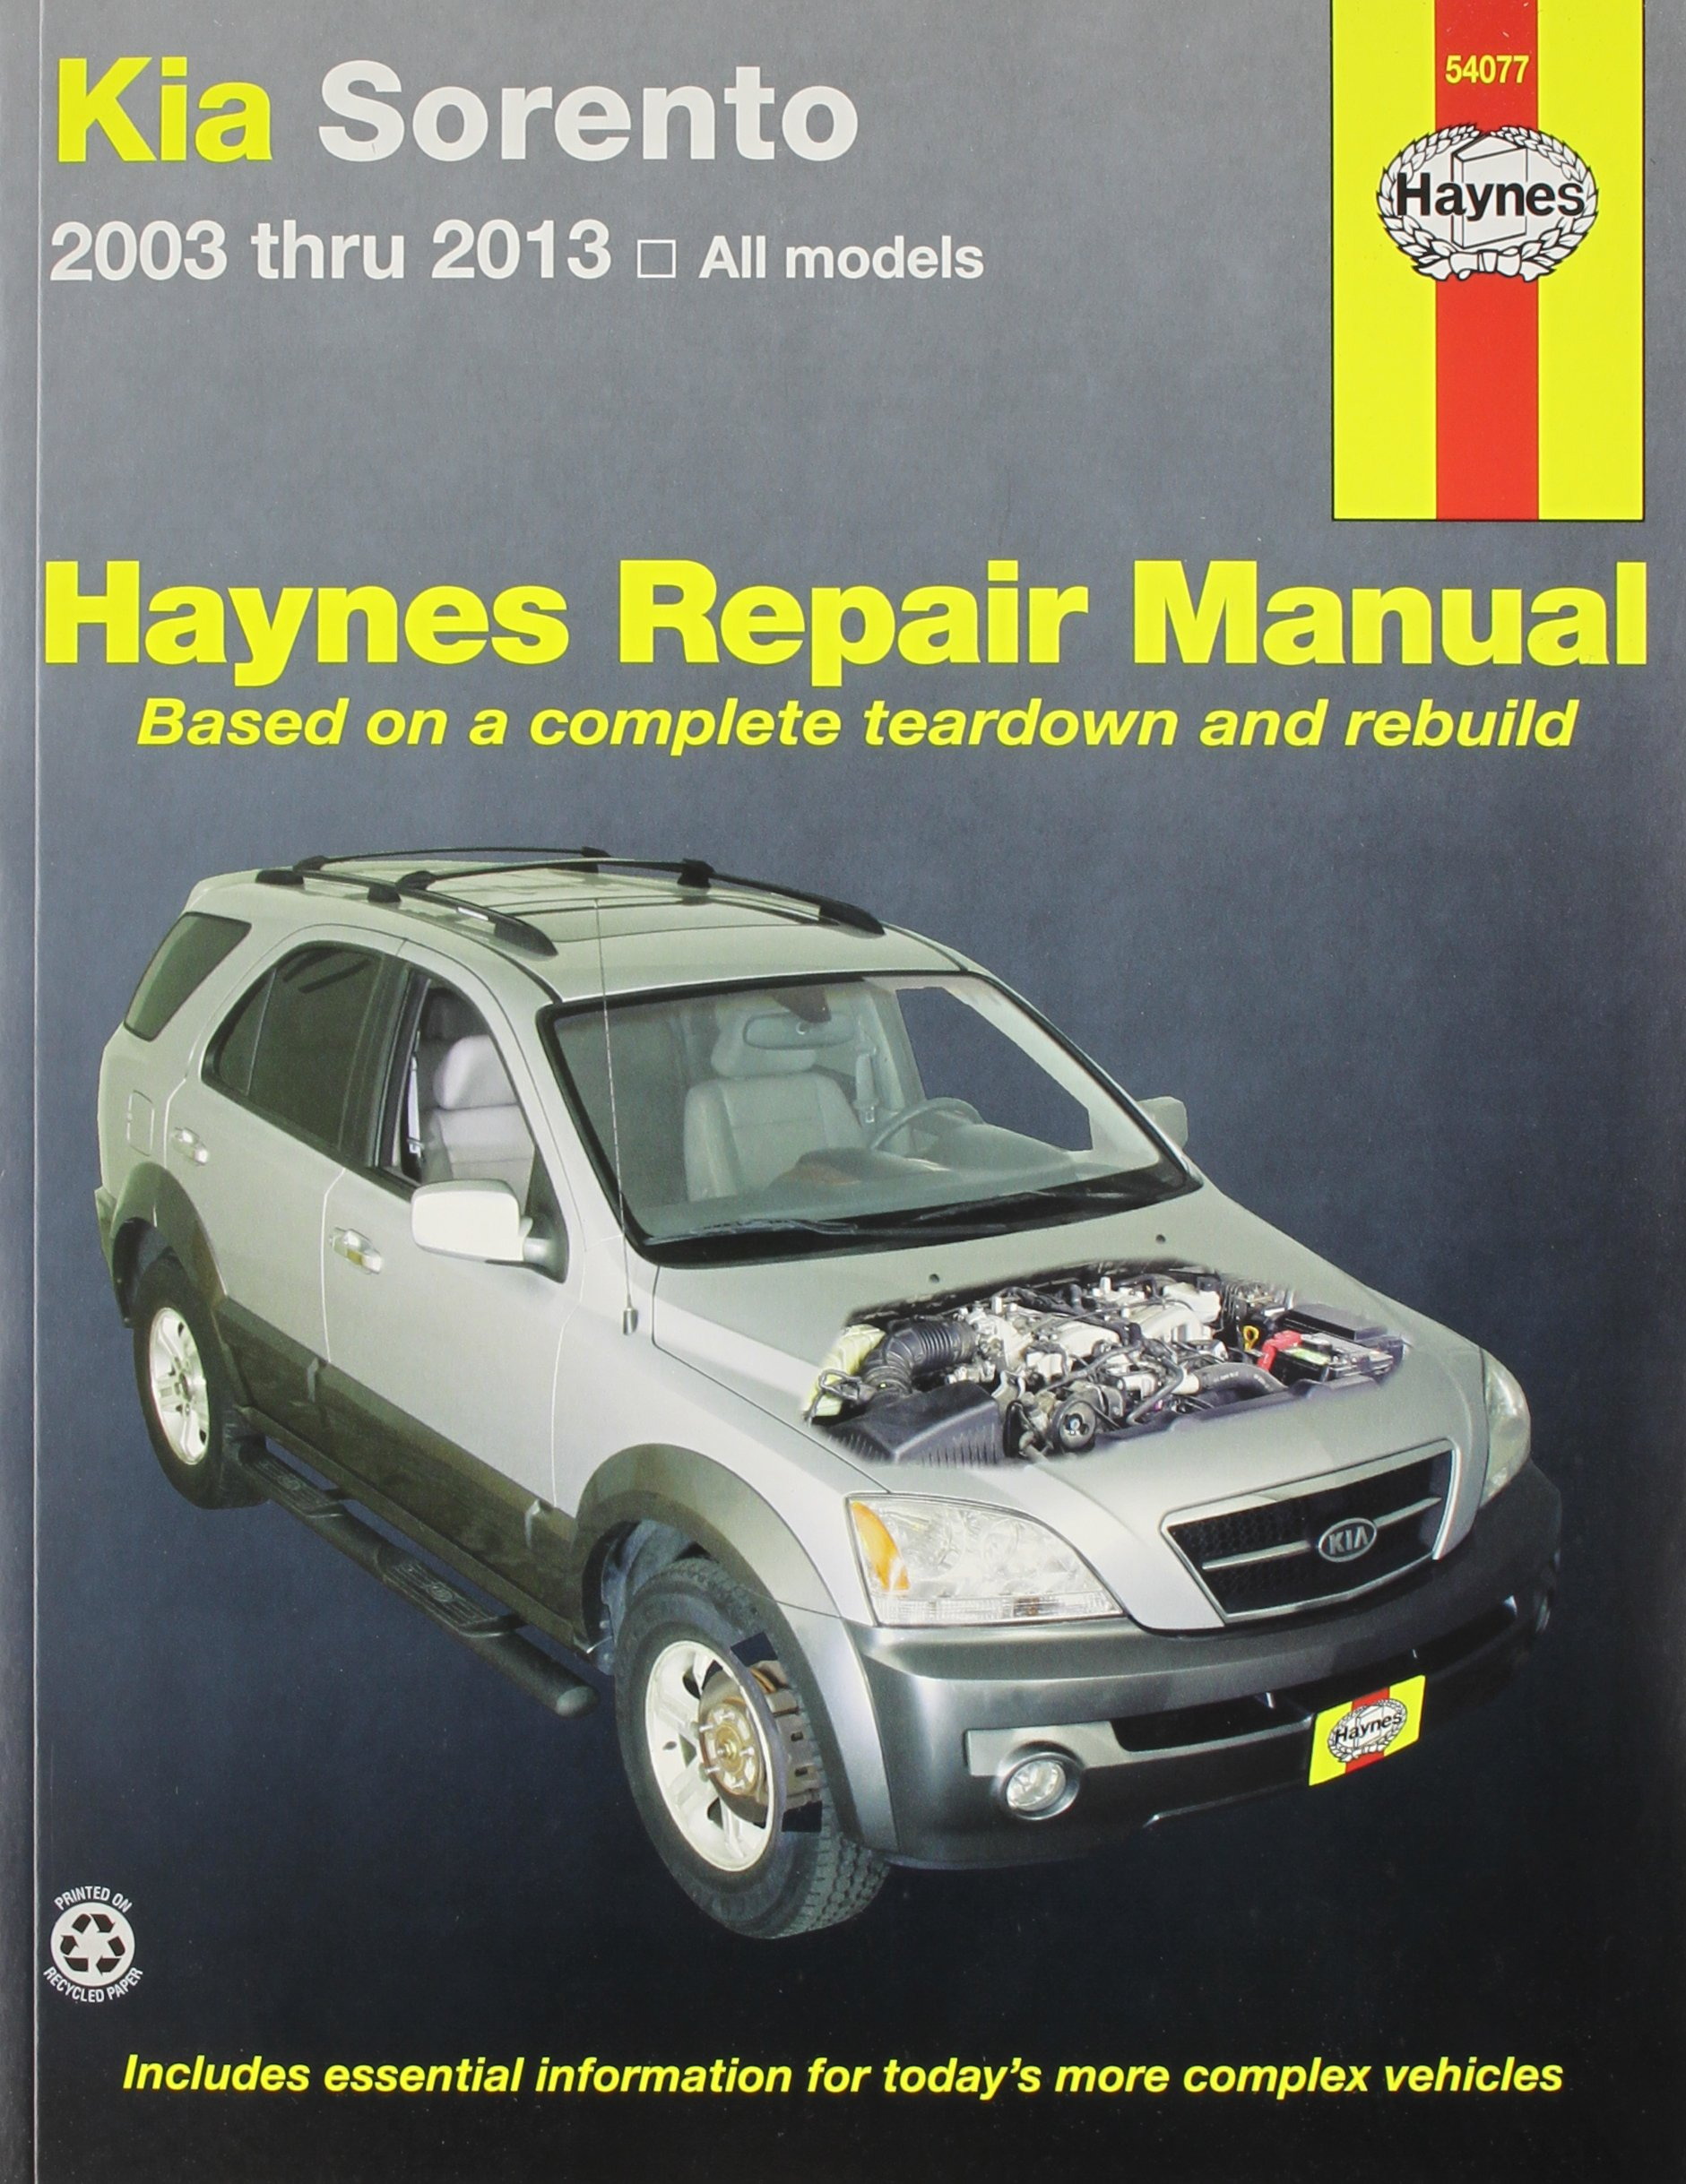 Kia Sorento 2003-13 (Haynes Automotive): Amazon.co.uk: Haynes Publishing:  9781620920466: Books